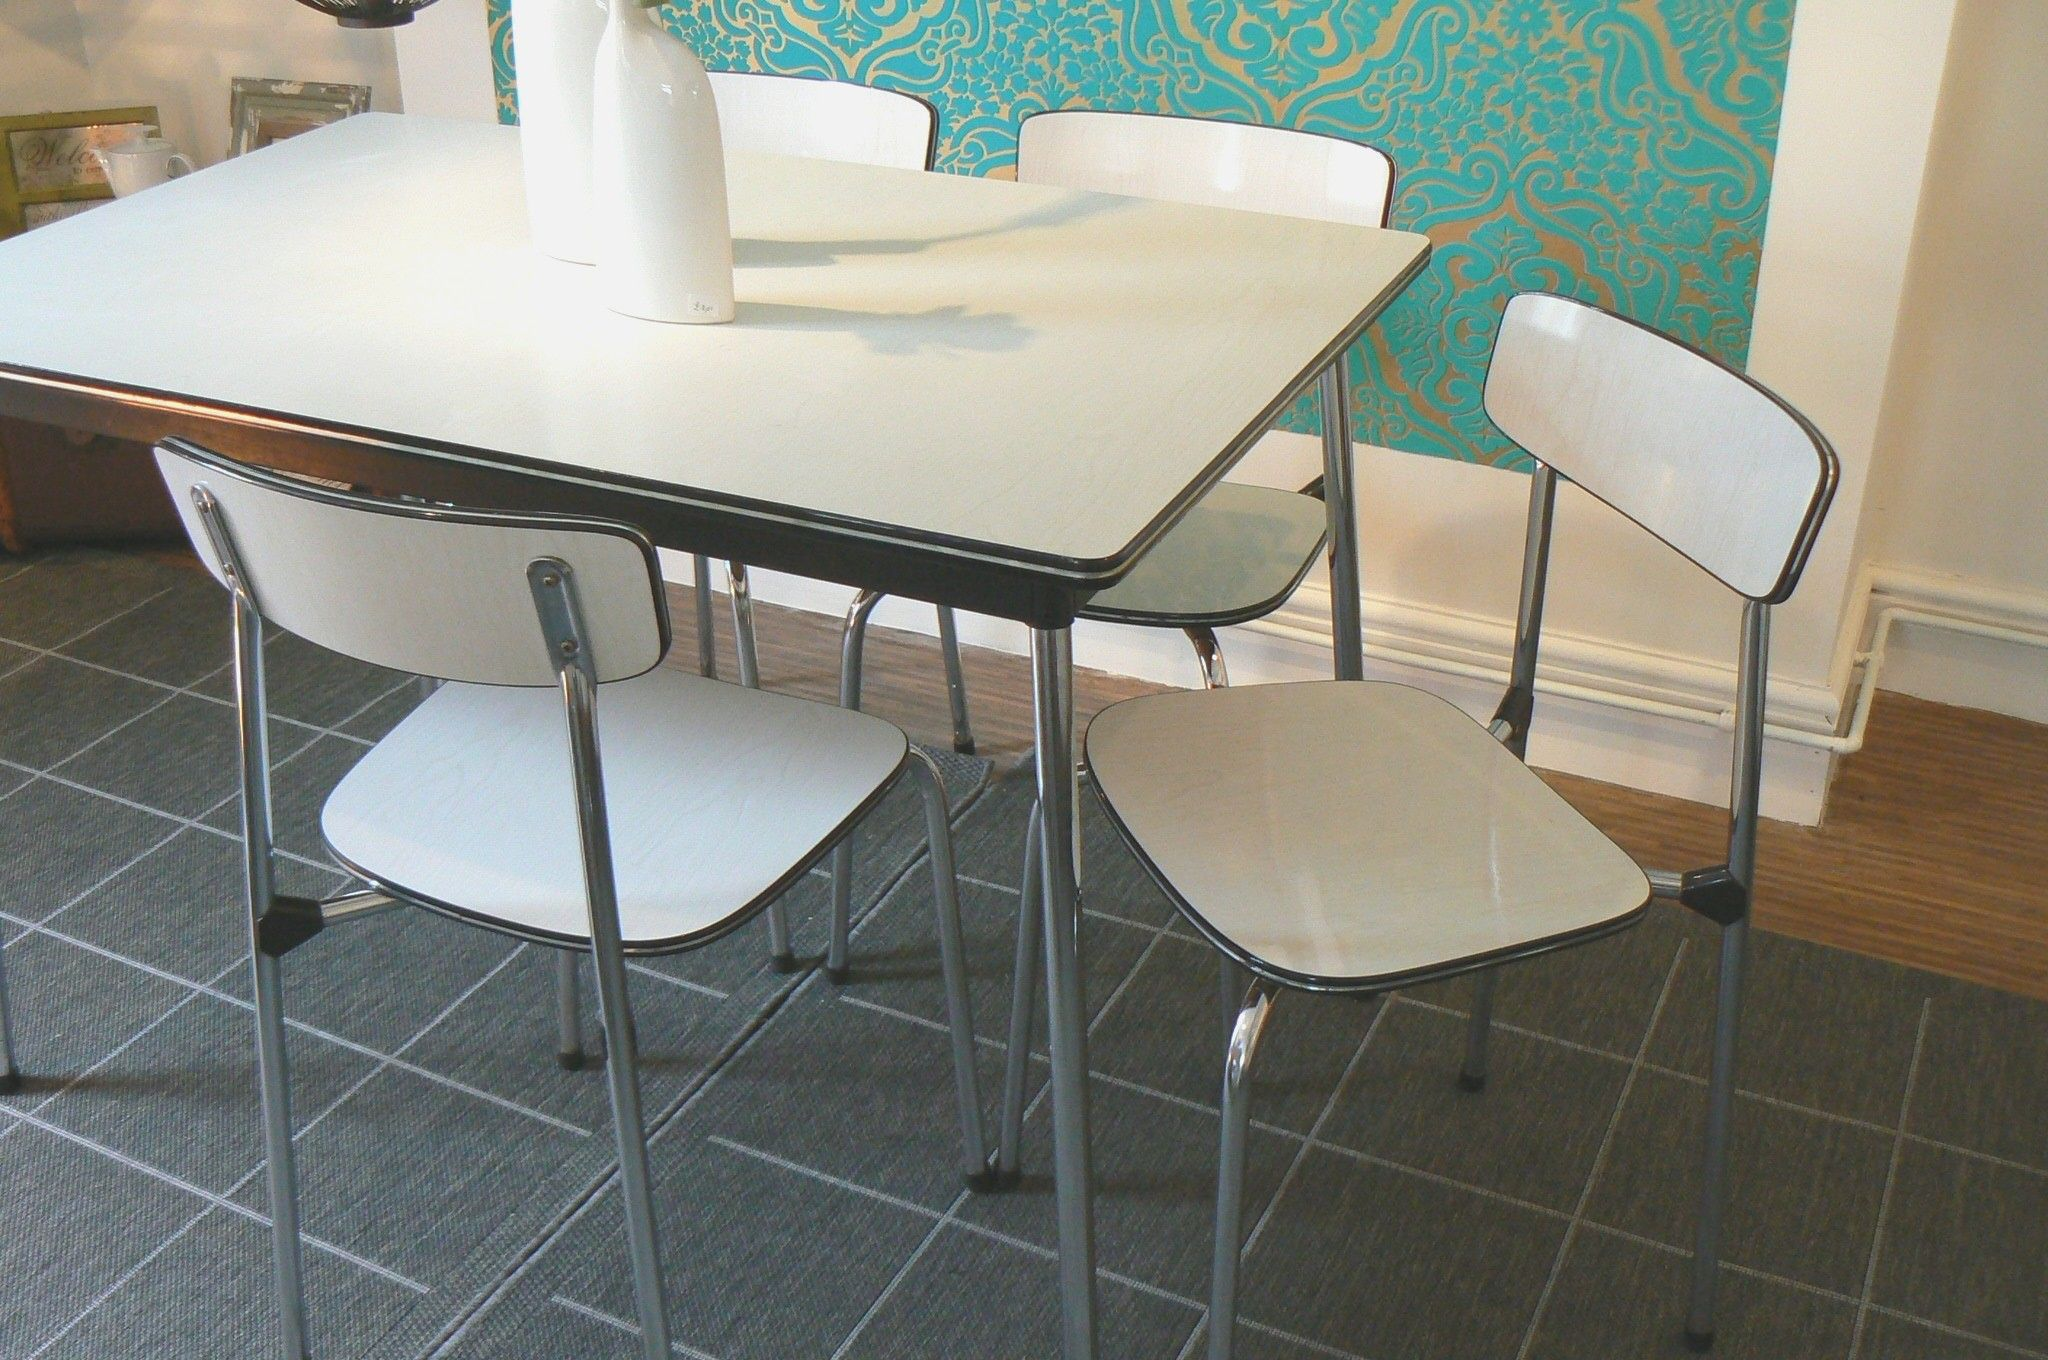 1950s Formica Kitchen Table And Chairs 1950s Formica Kitchen